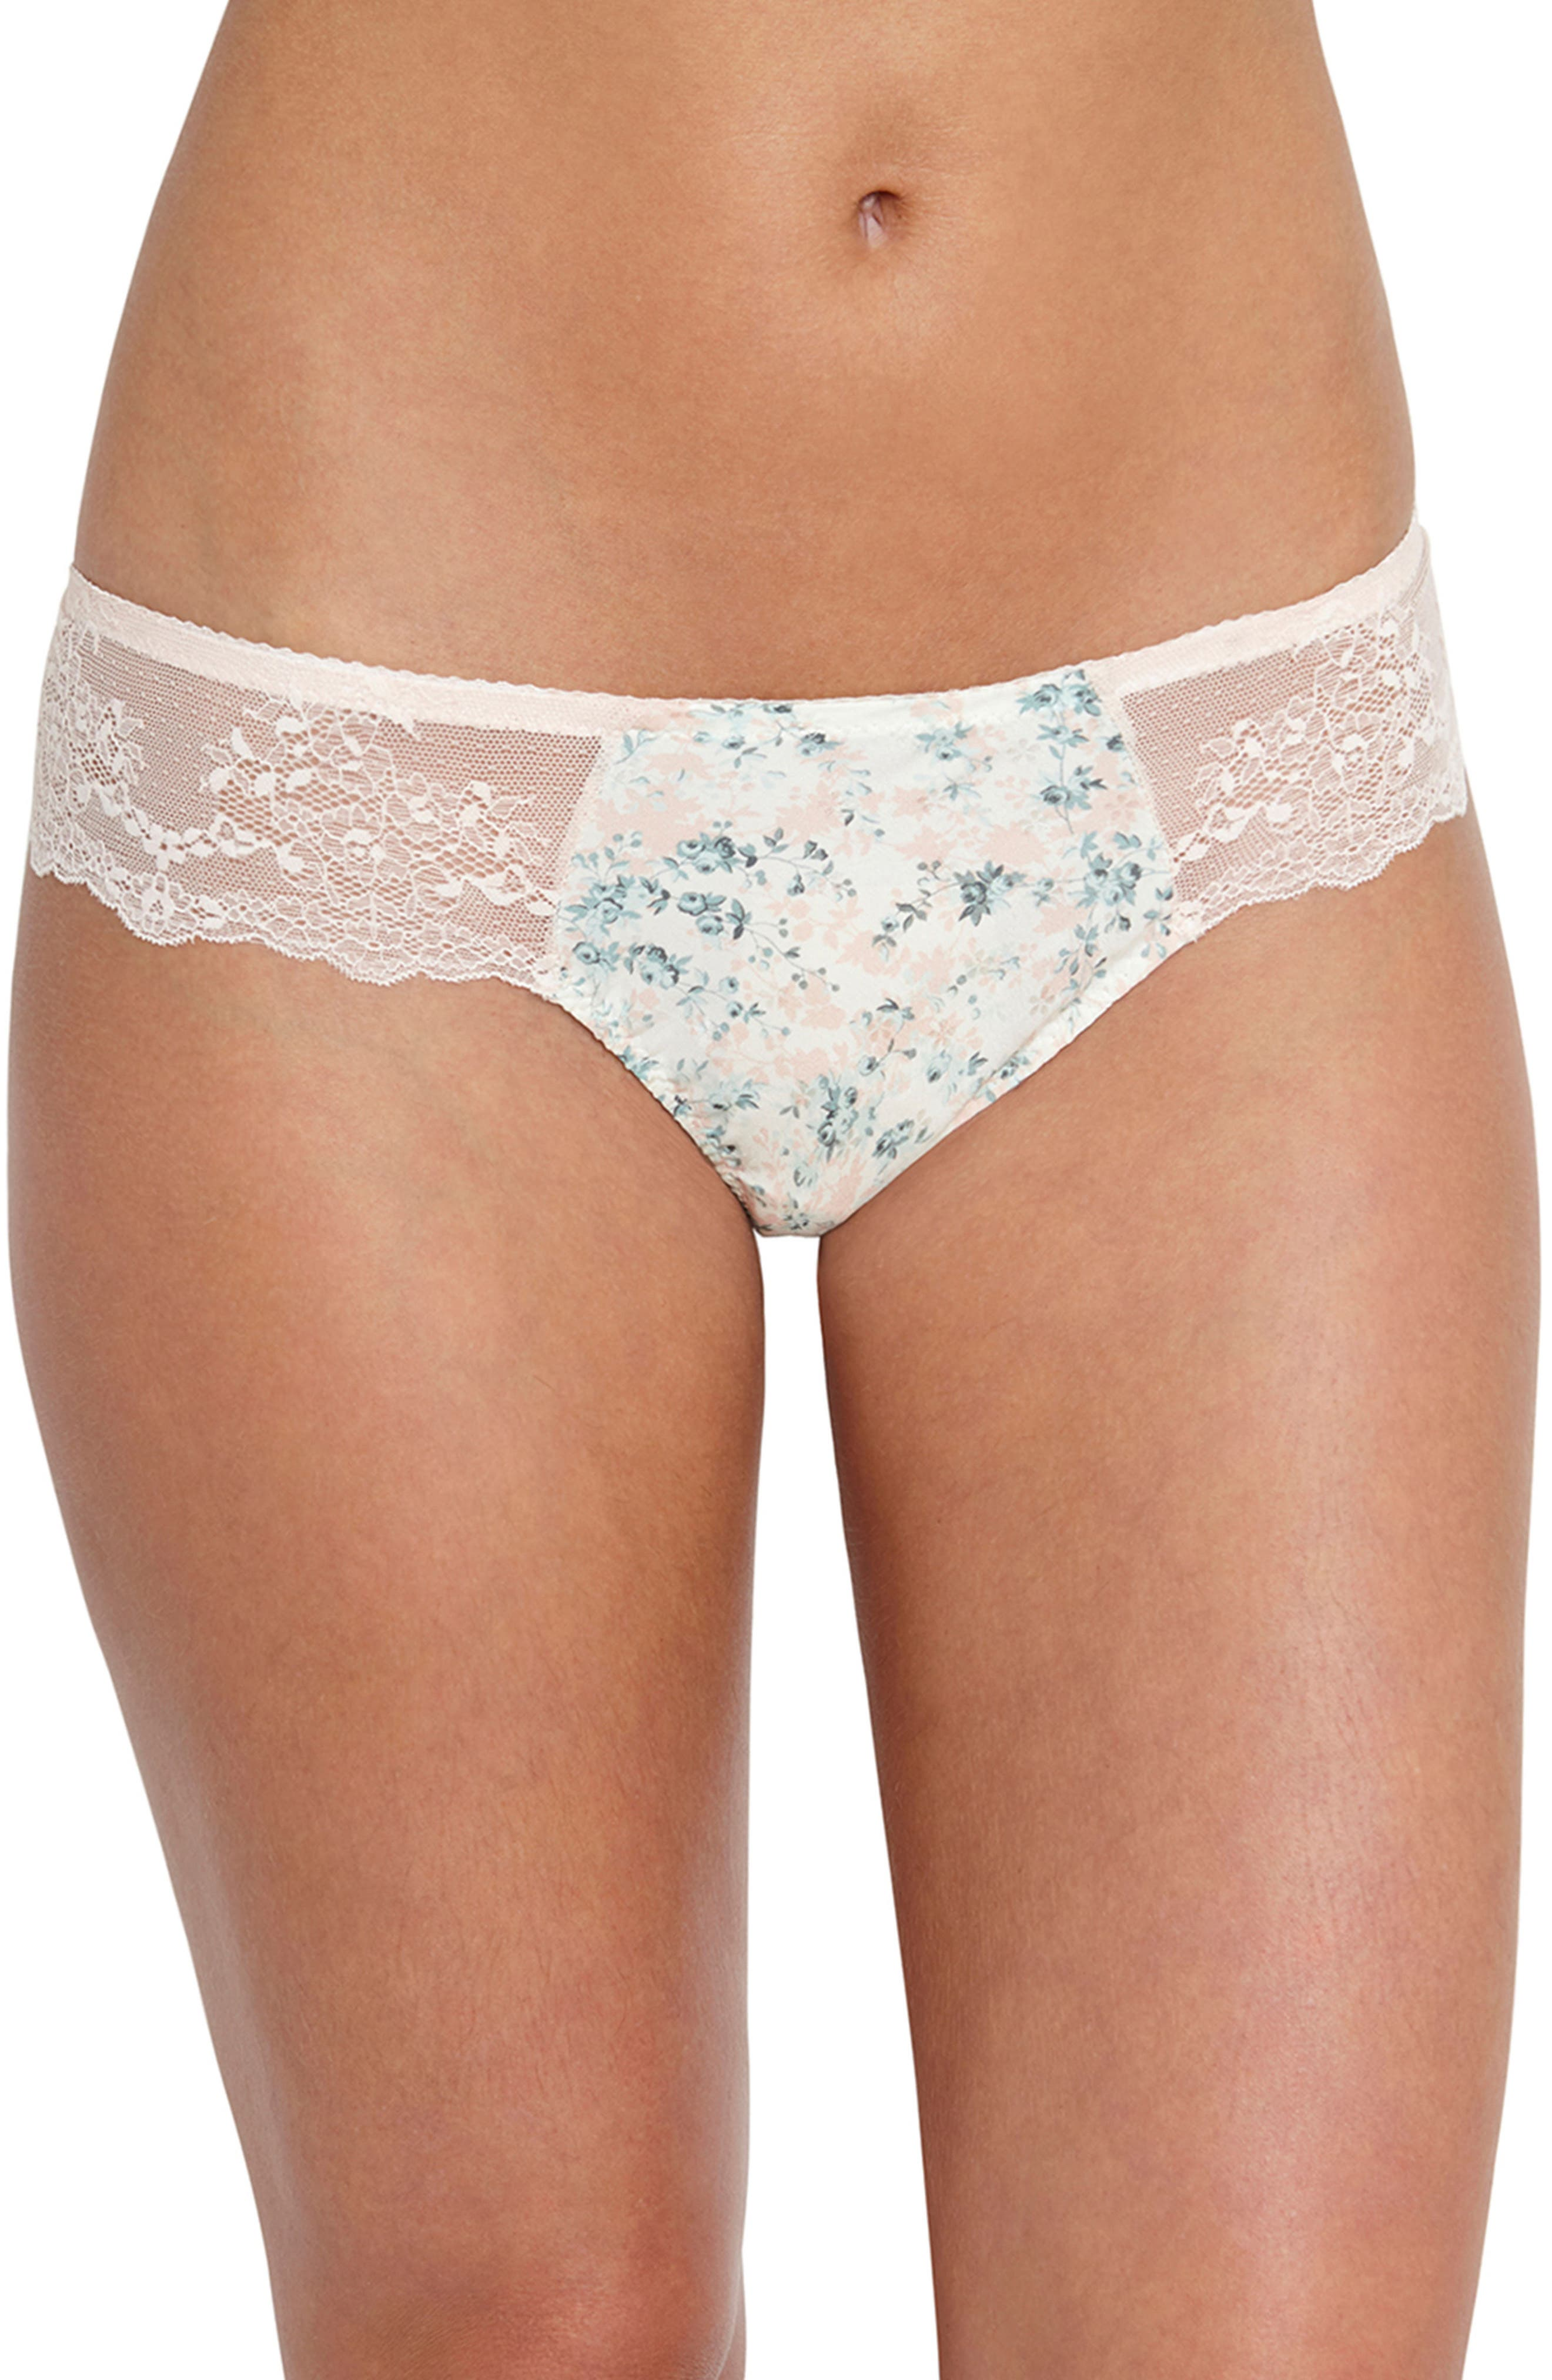 Lily Lace Silk Thong,                             Main thumbnail 1, color,                             Ivory Floral Print